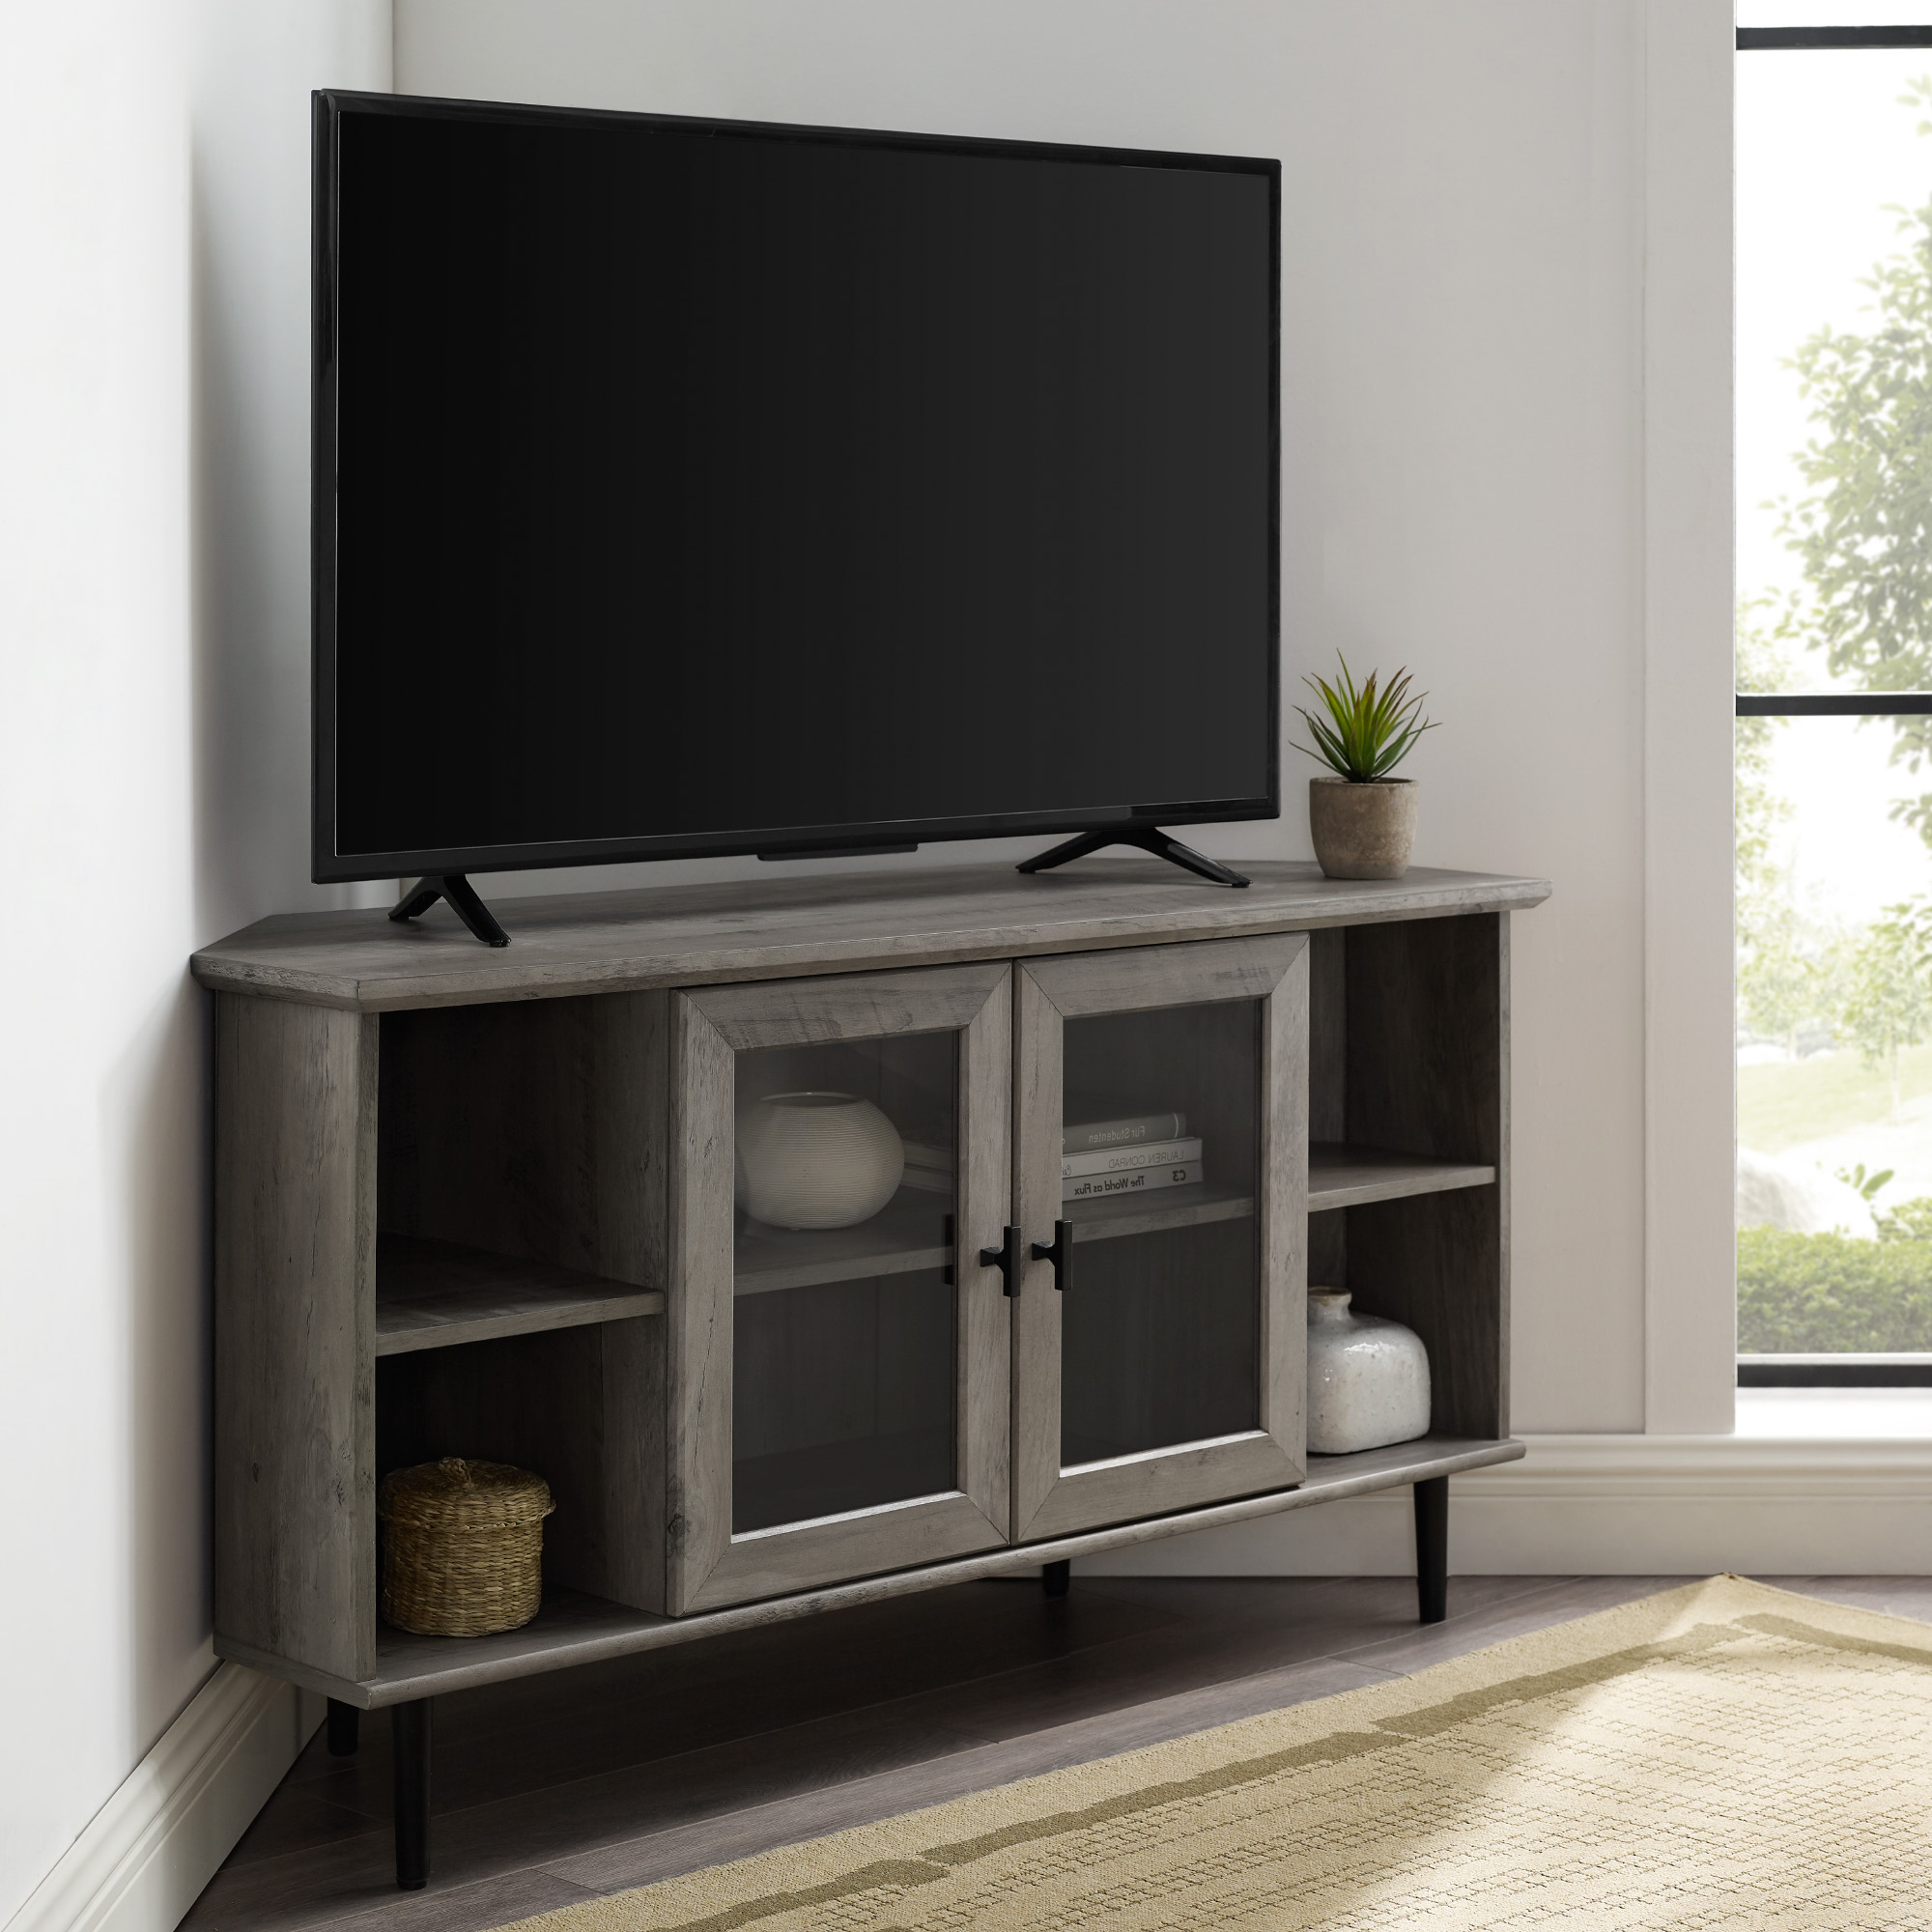 Manor Park Glass Door Corner Tv Stand For Tvs Up To 55 Throughout Delphi Grey Tv Stands (View 1 of 20)